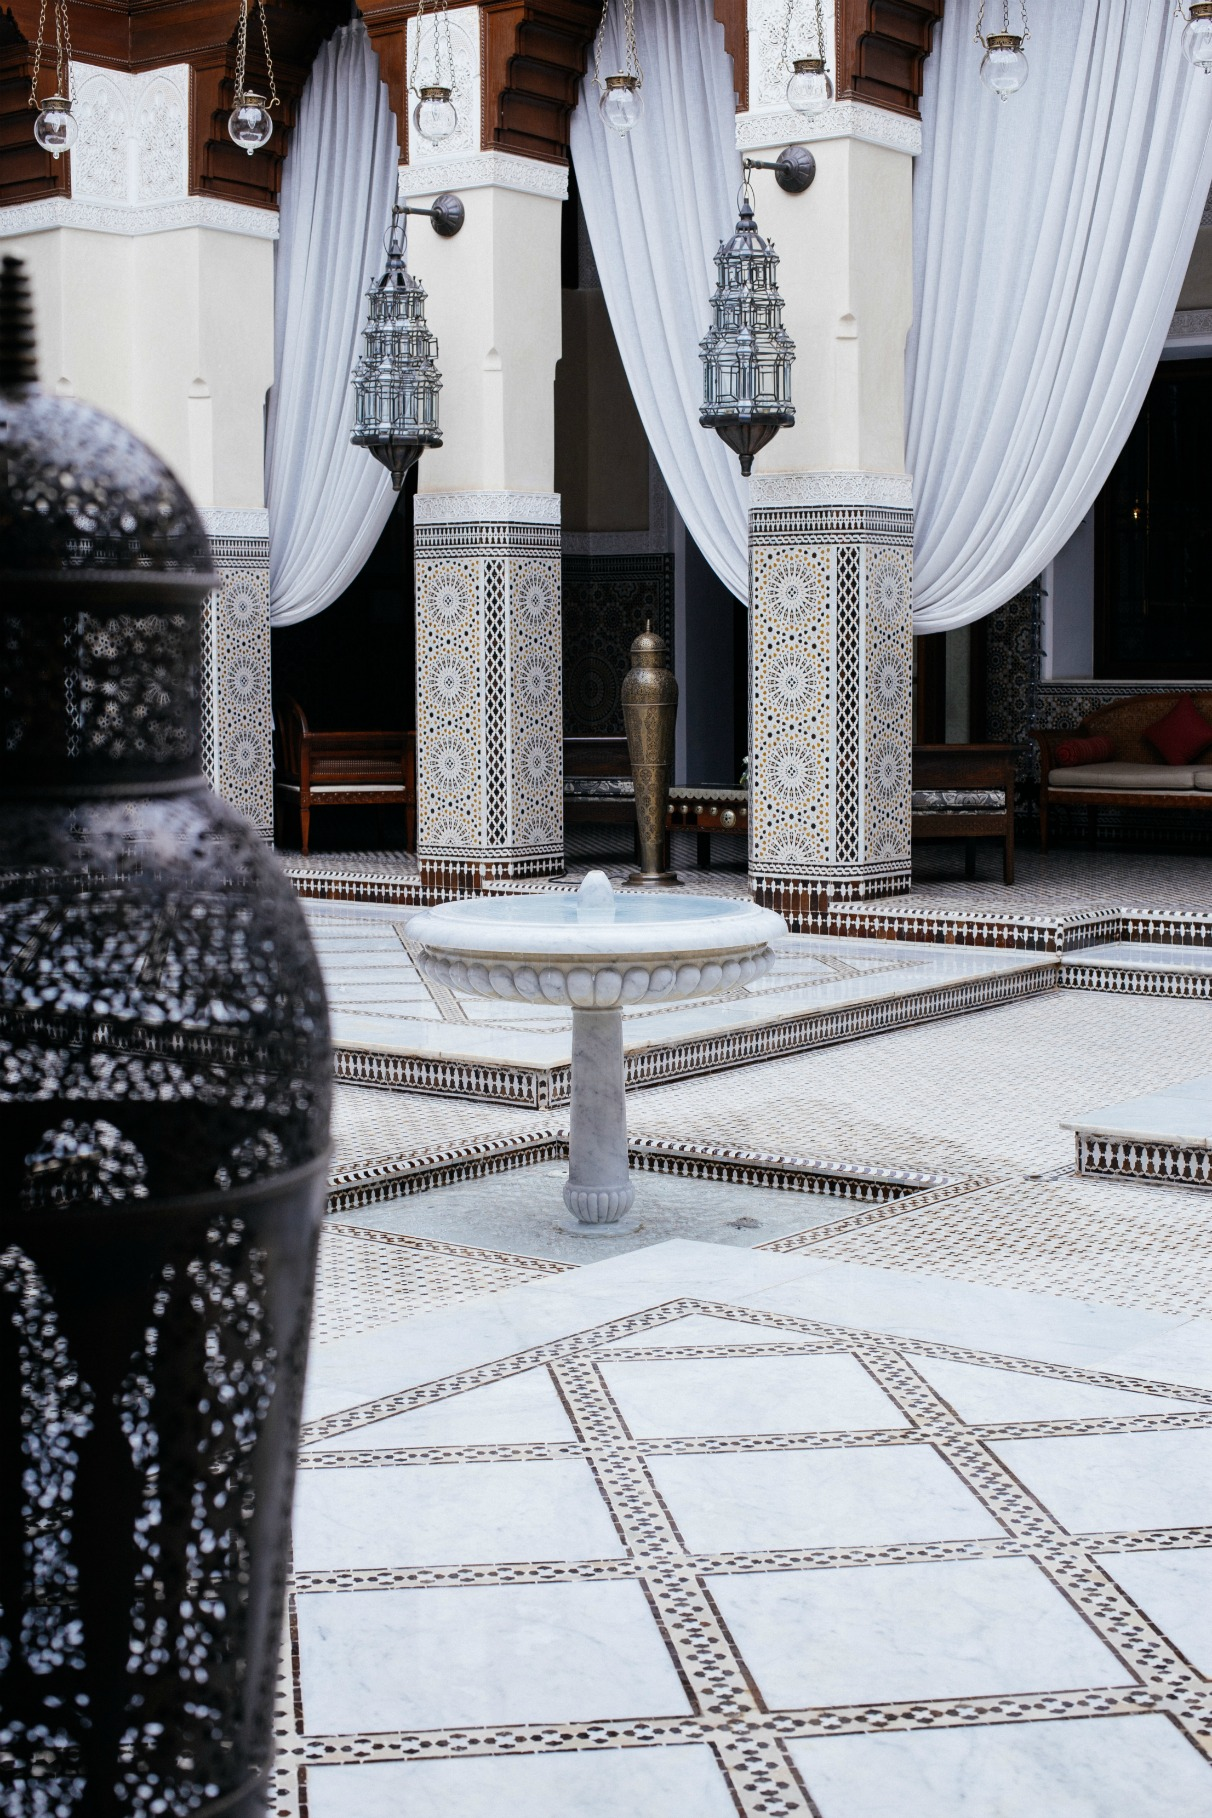 royal-mansour-hotel-luxury-marrakesch-marrakesh-morocco-edisa-shahini-disicouture-blog-0299222